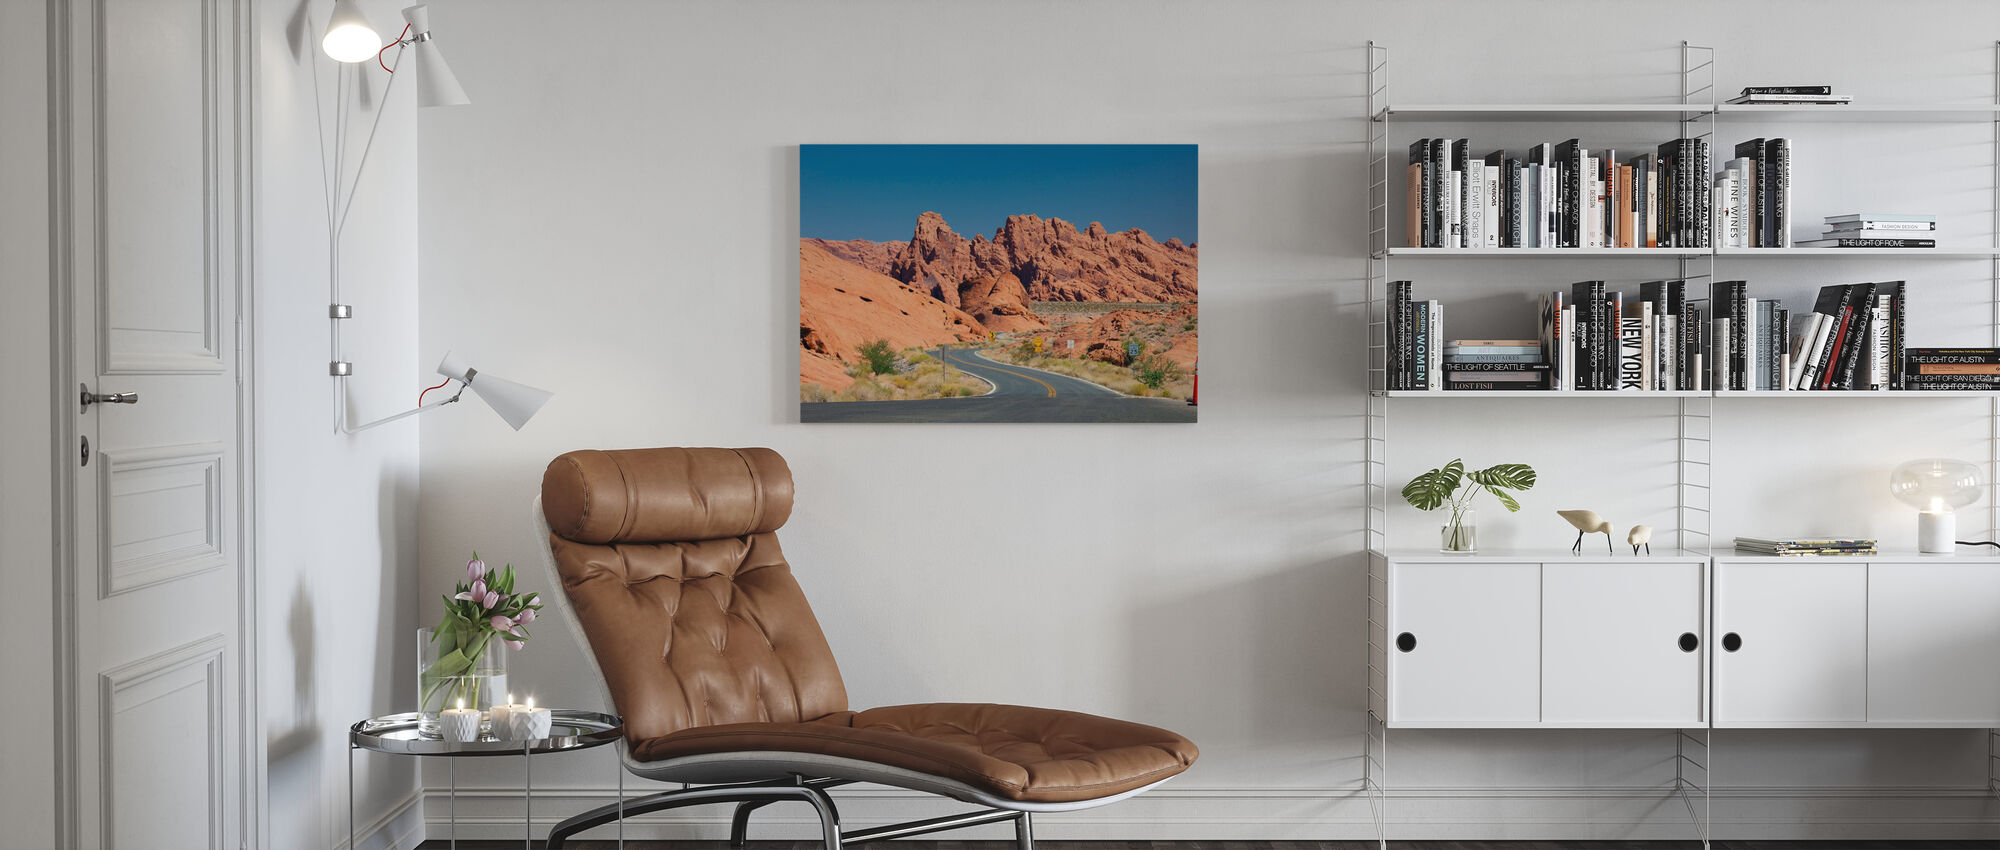 Valley of Fire in Nevada, USA - Canvas print - Living Room